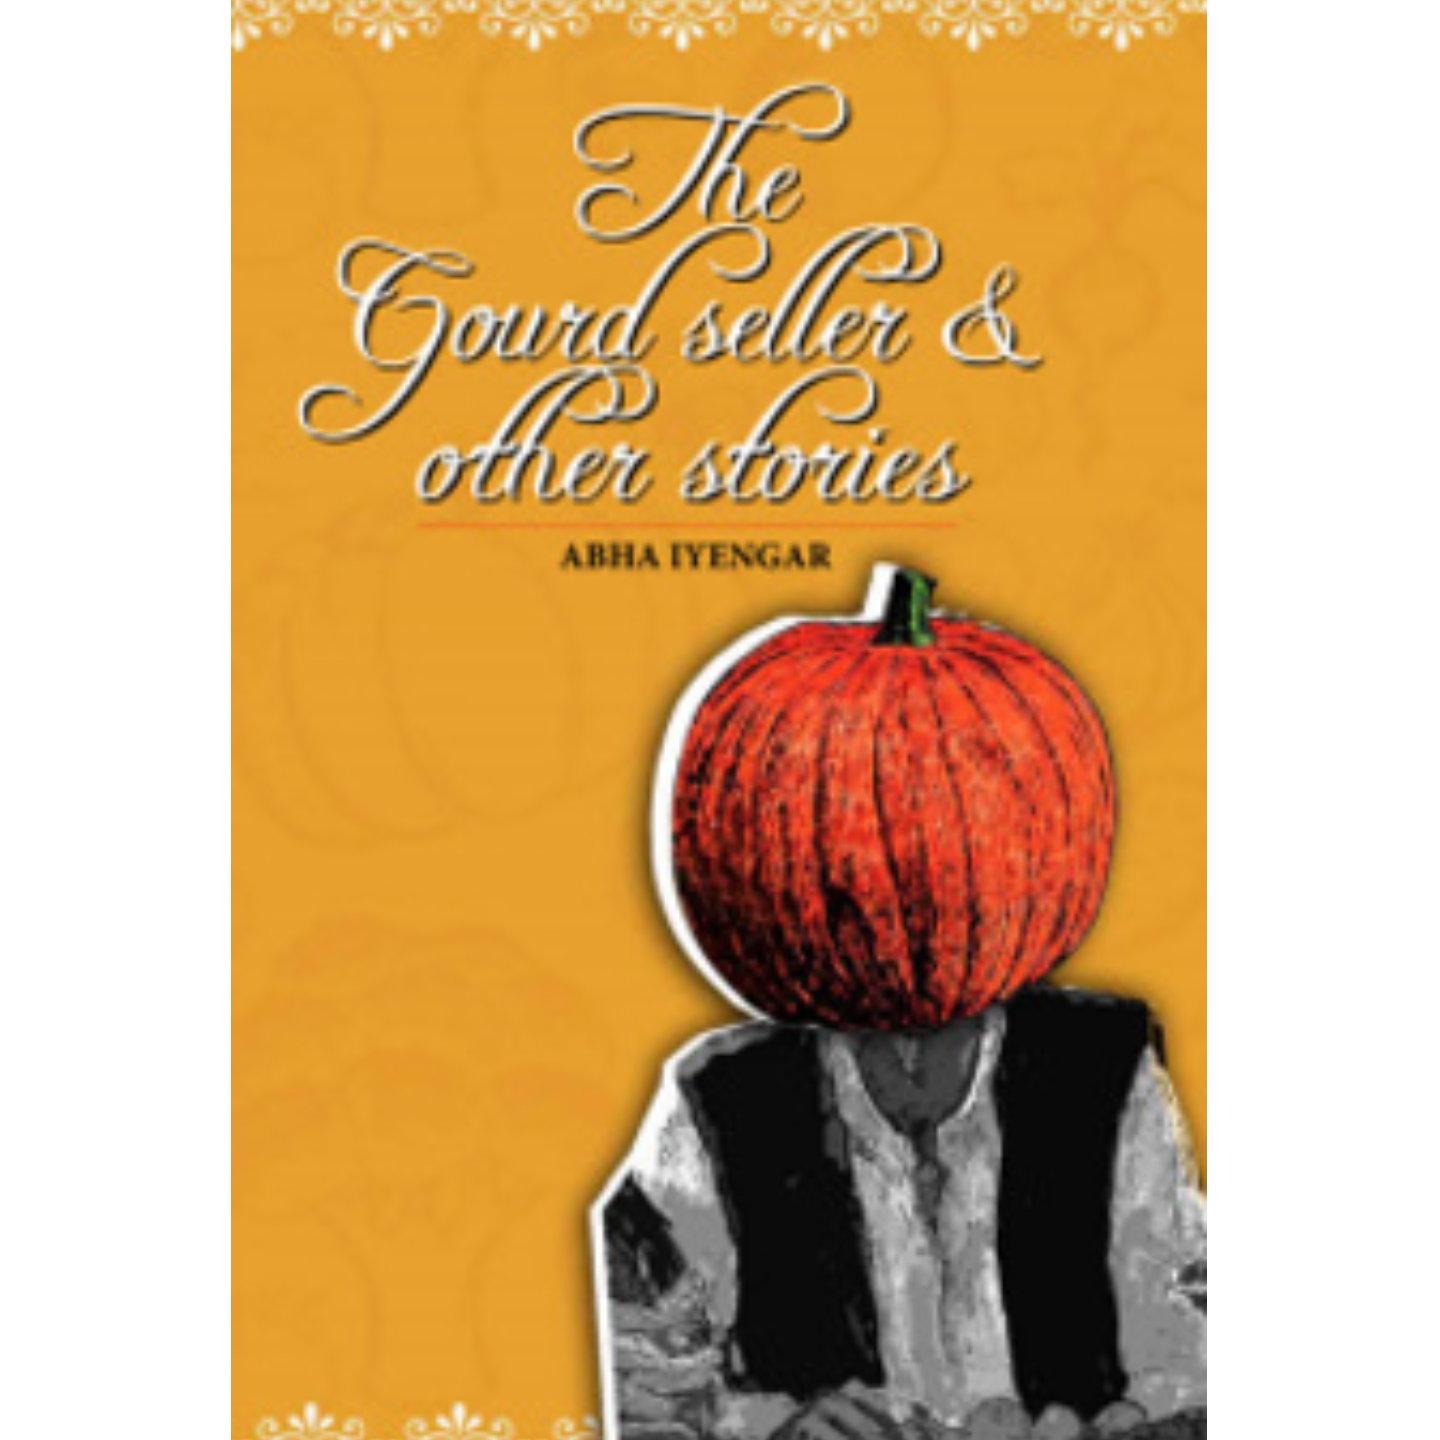 The Gourdseller and Other Stories by Abha Iyengar